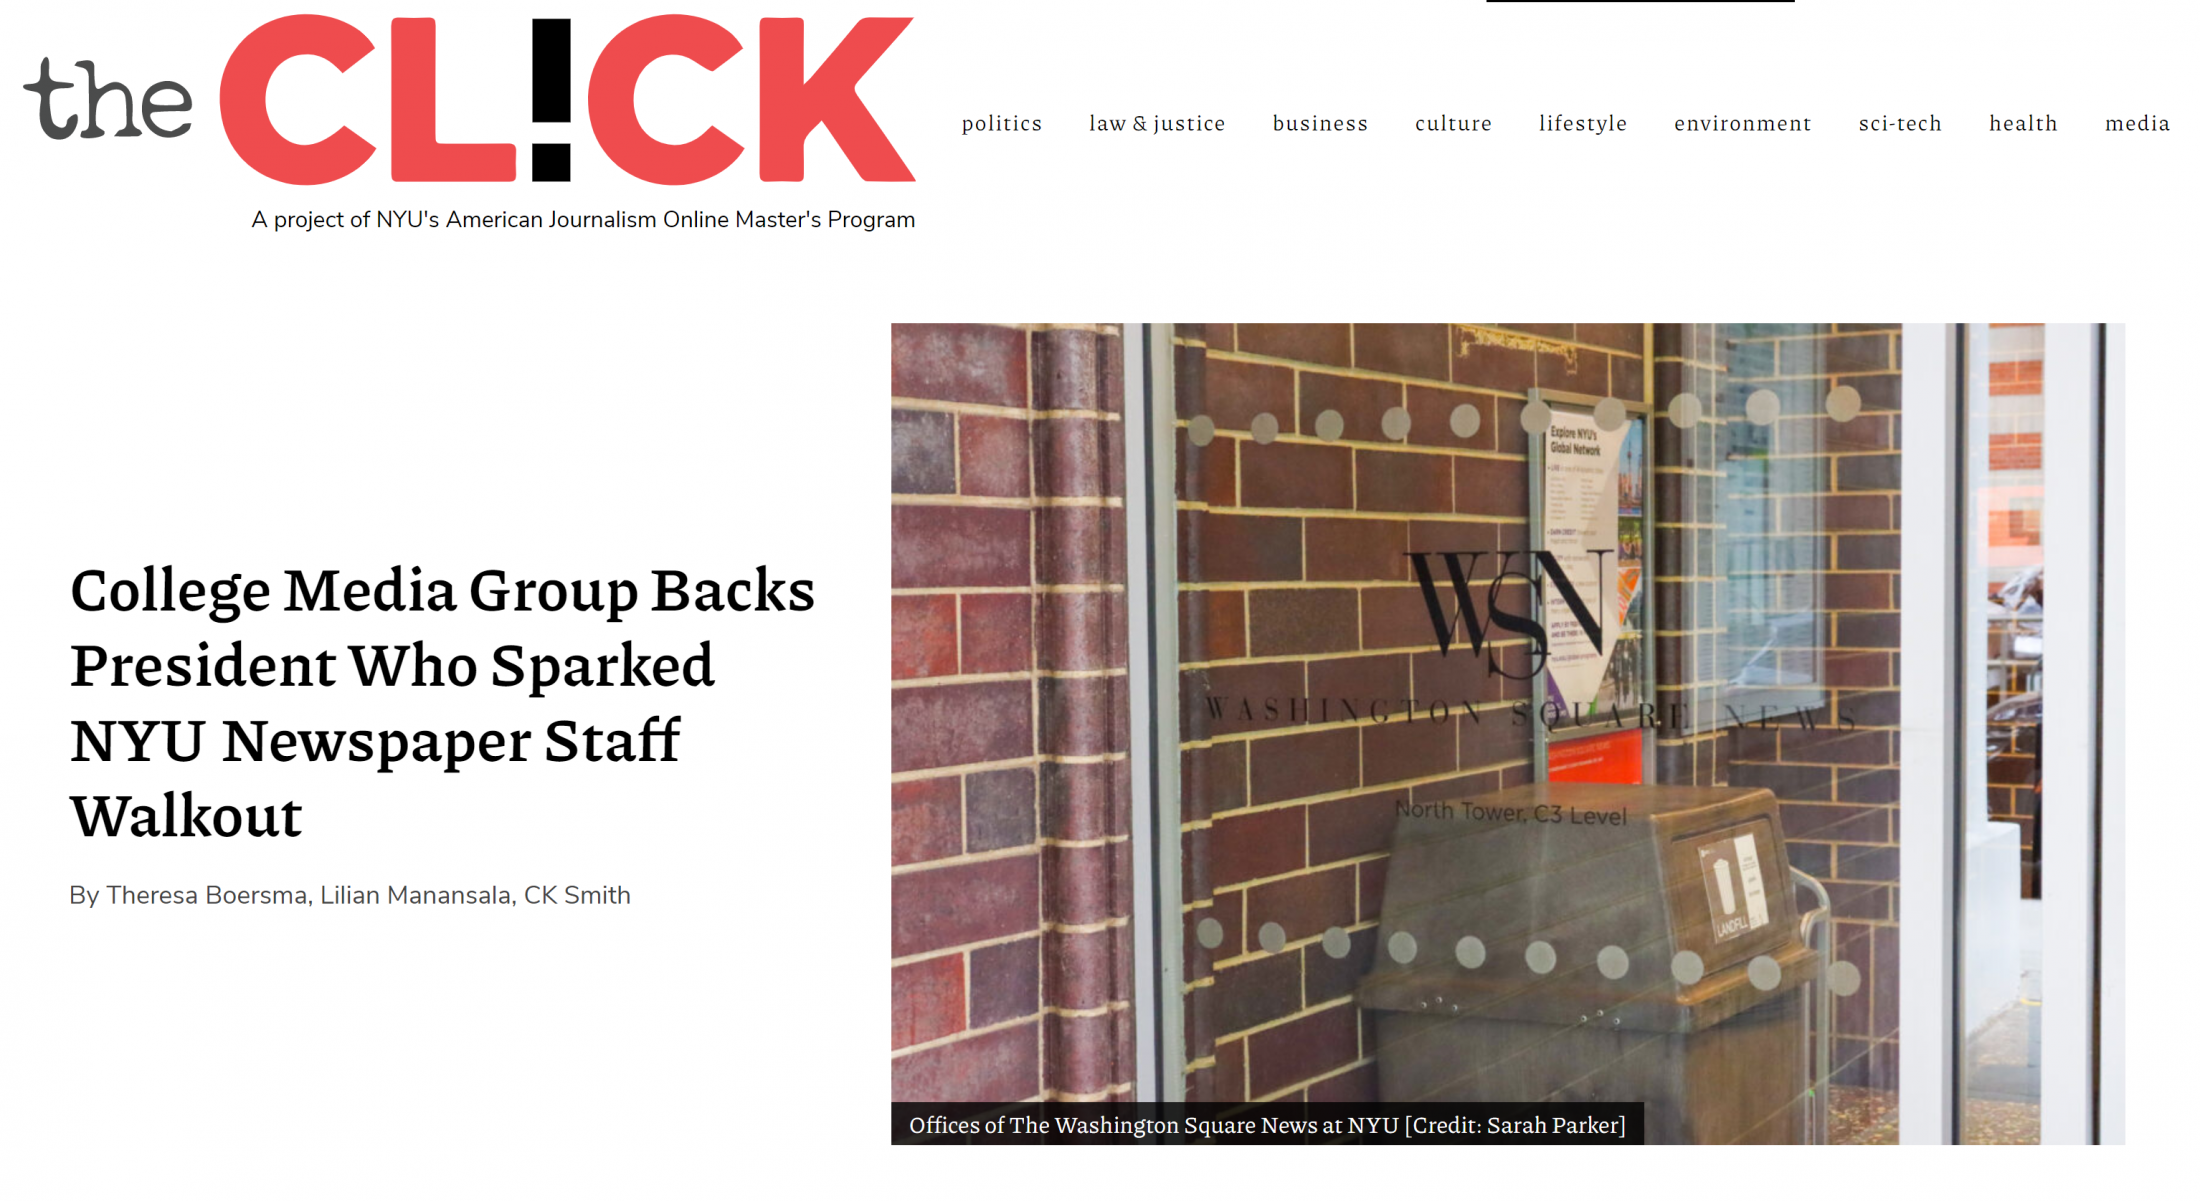 Art and Documentary Photography - Loading College_Media_Group_Backs_President_Who_Sparked_NYU_Newspaper_Staff_Walkout.PNG